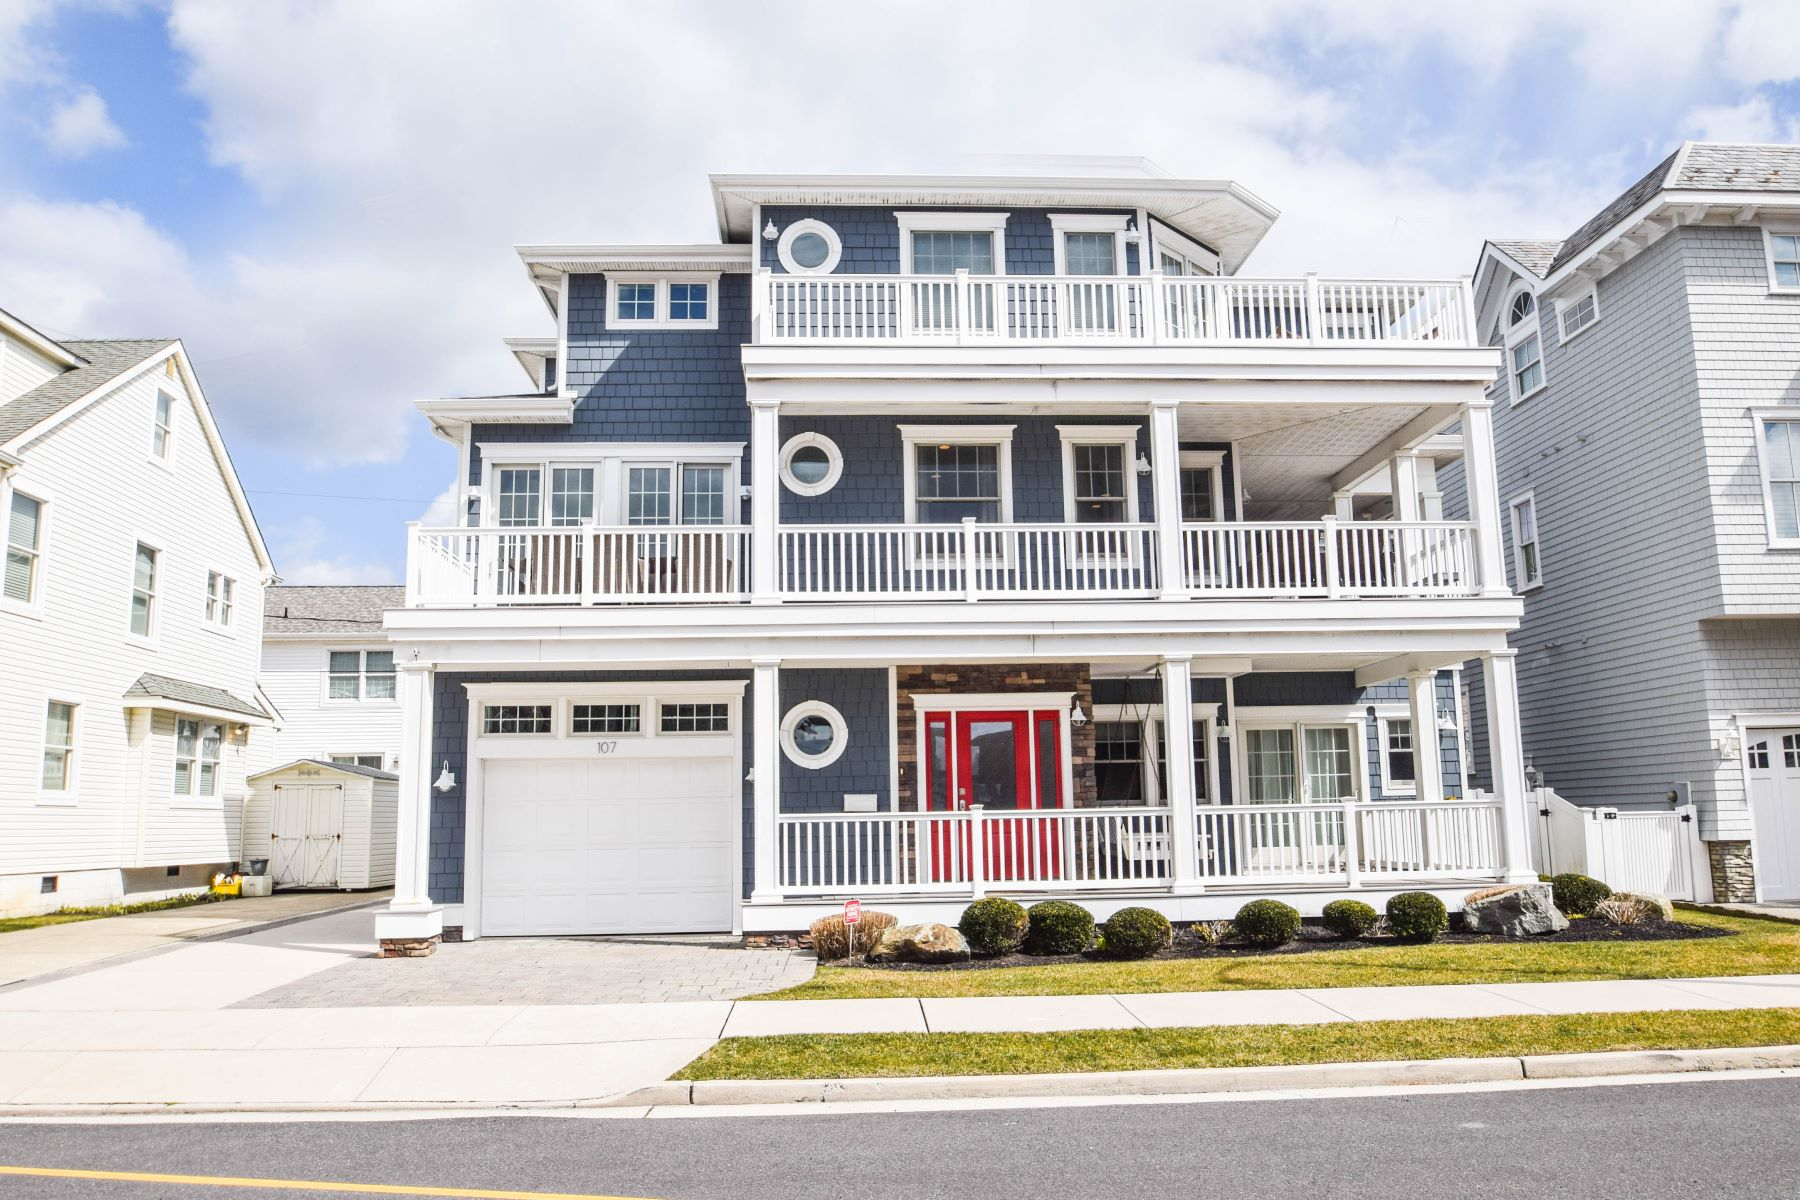 single family homes for Rent at 107 S Philadelphia Avenue August 2019, Ventnor, New Jersey 08406 United States